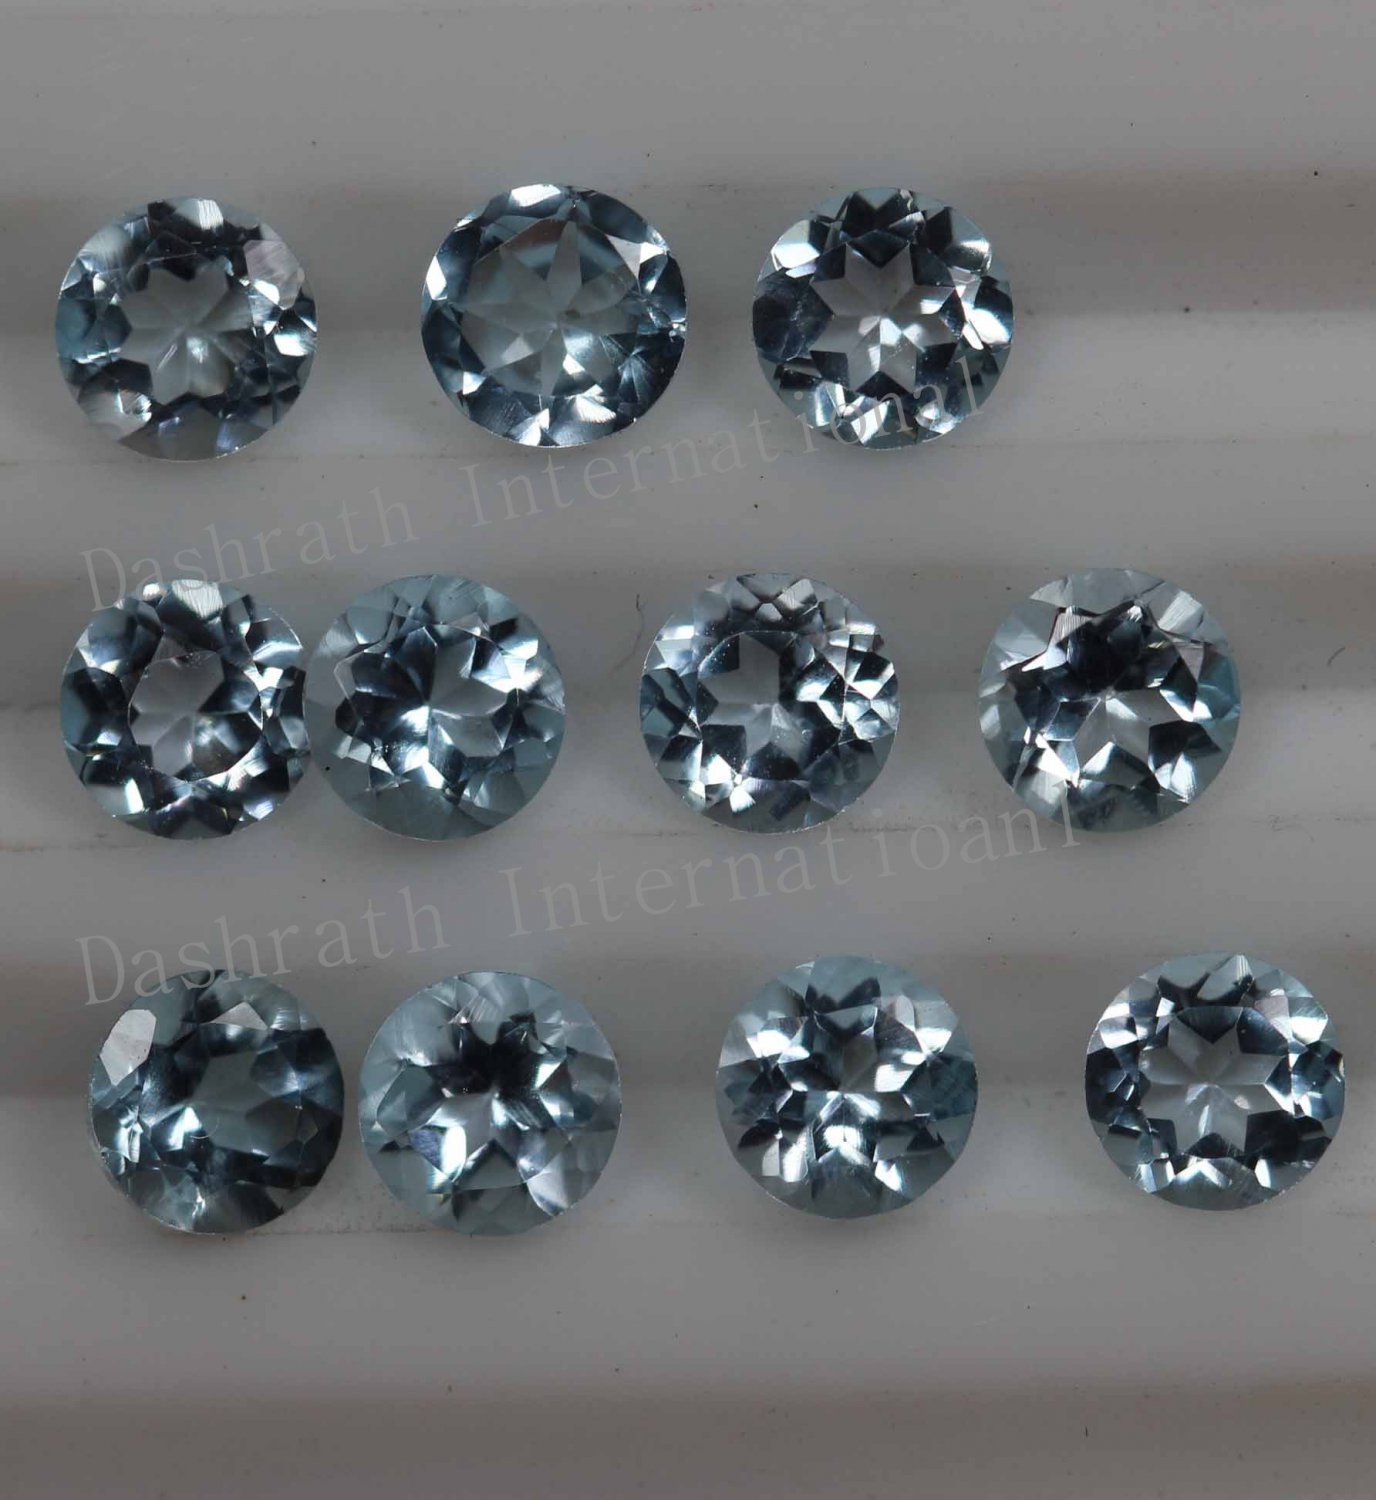 7mmNatural Sky Blue Topaz Faceted Cut Round 5 Pieces Lot Blue Color  Top Quality Loose Gemstone